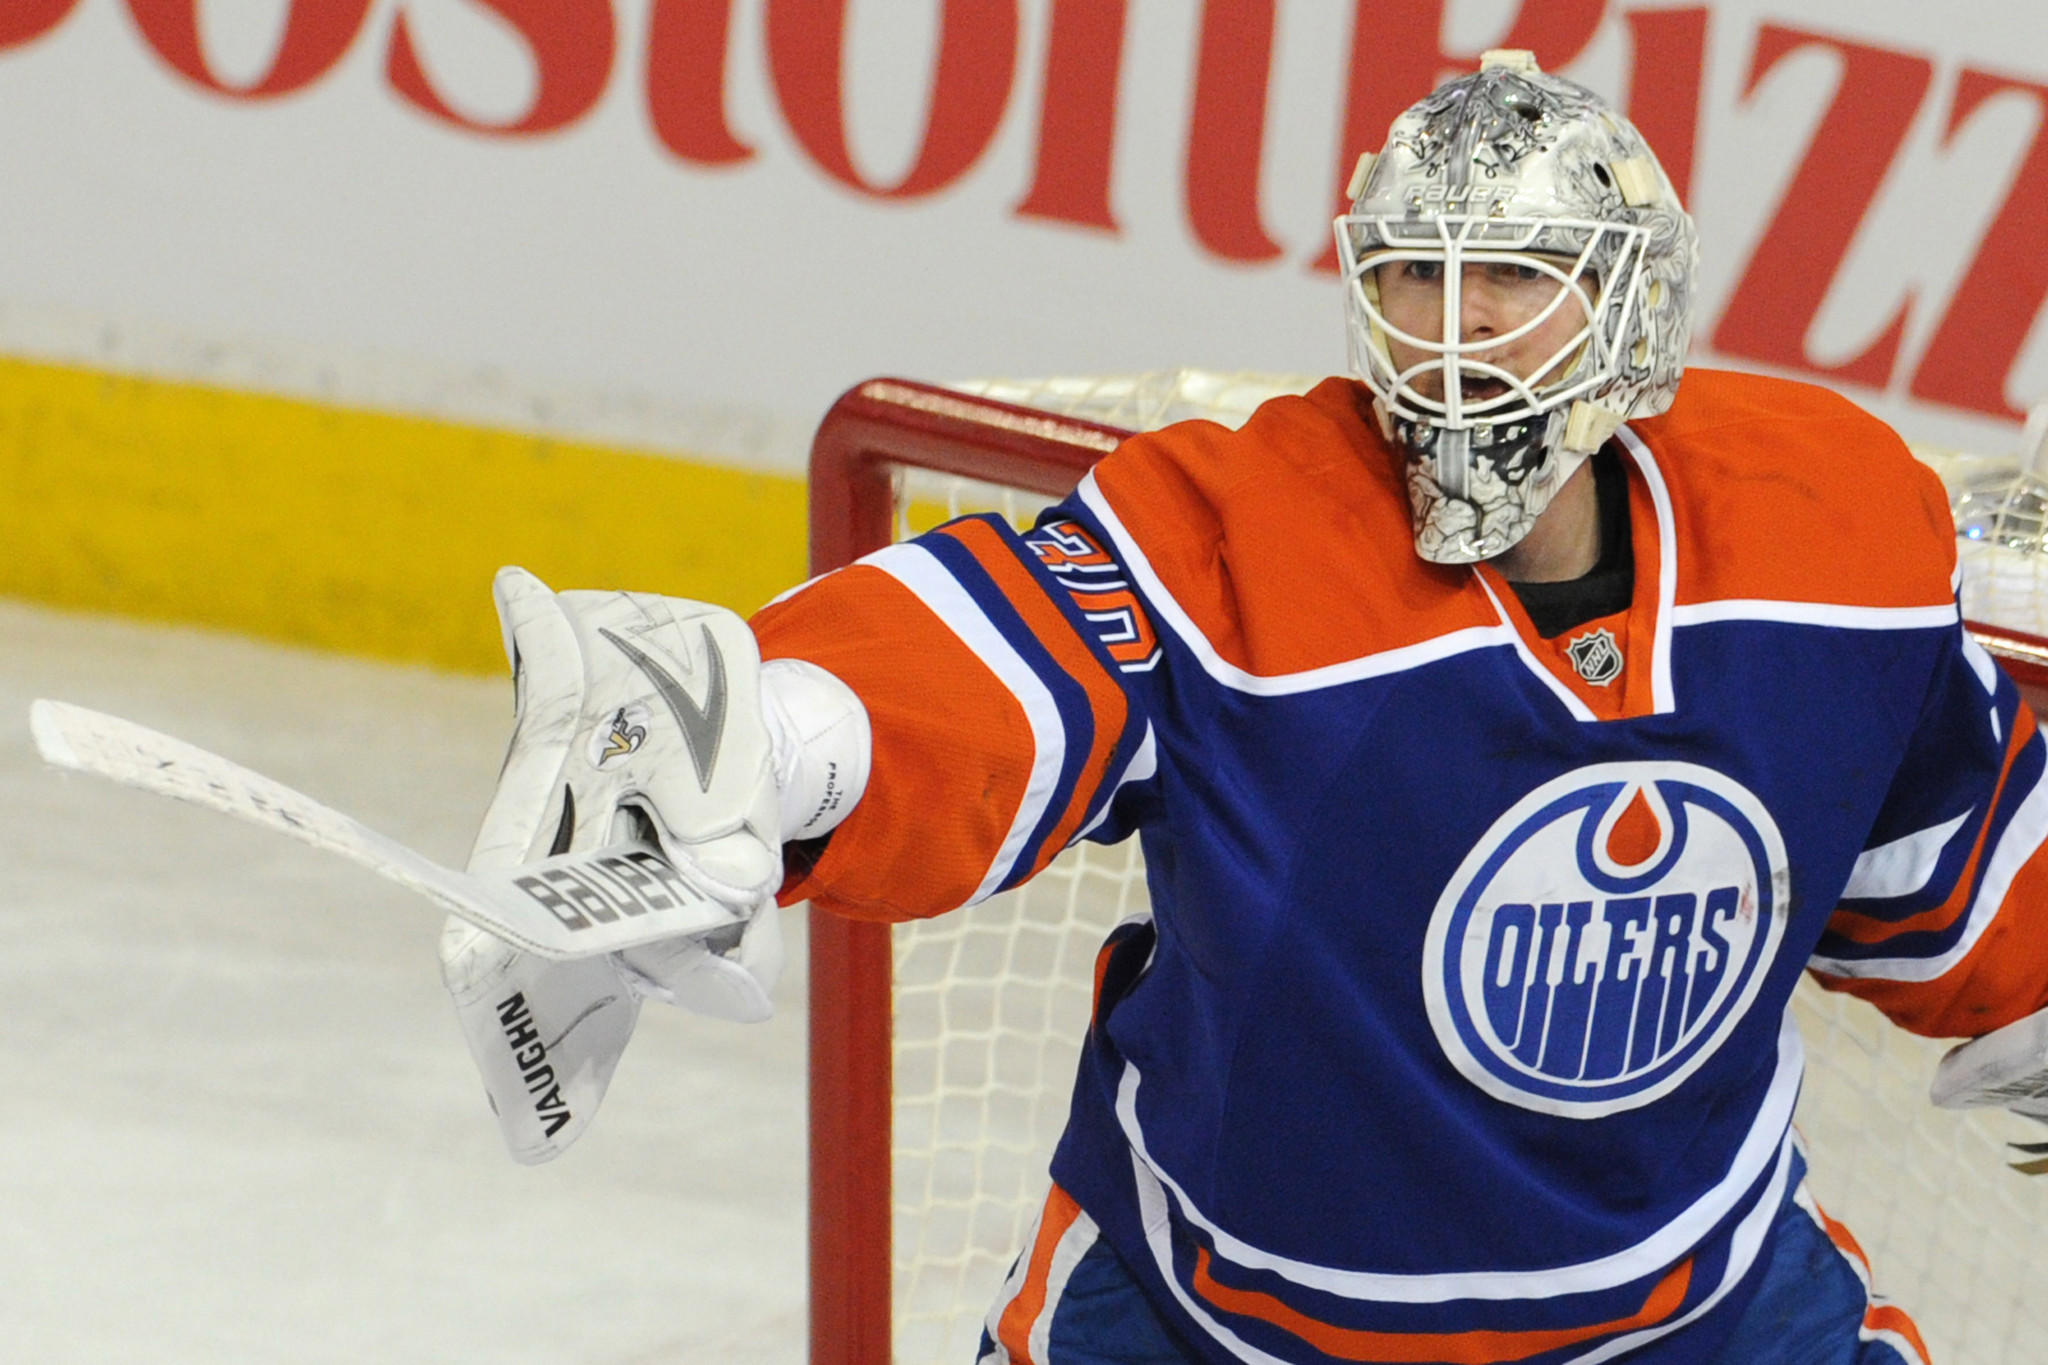 Oilers goalie Ben Scrivens sets record with 59 saves in ...